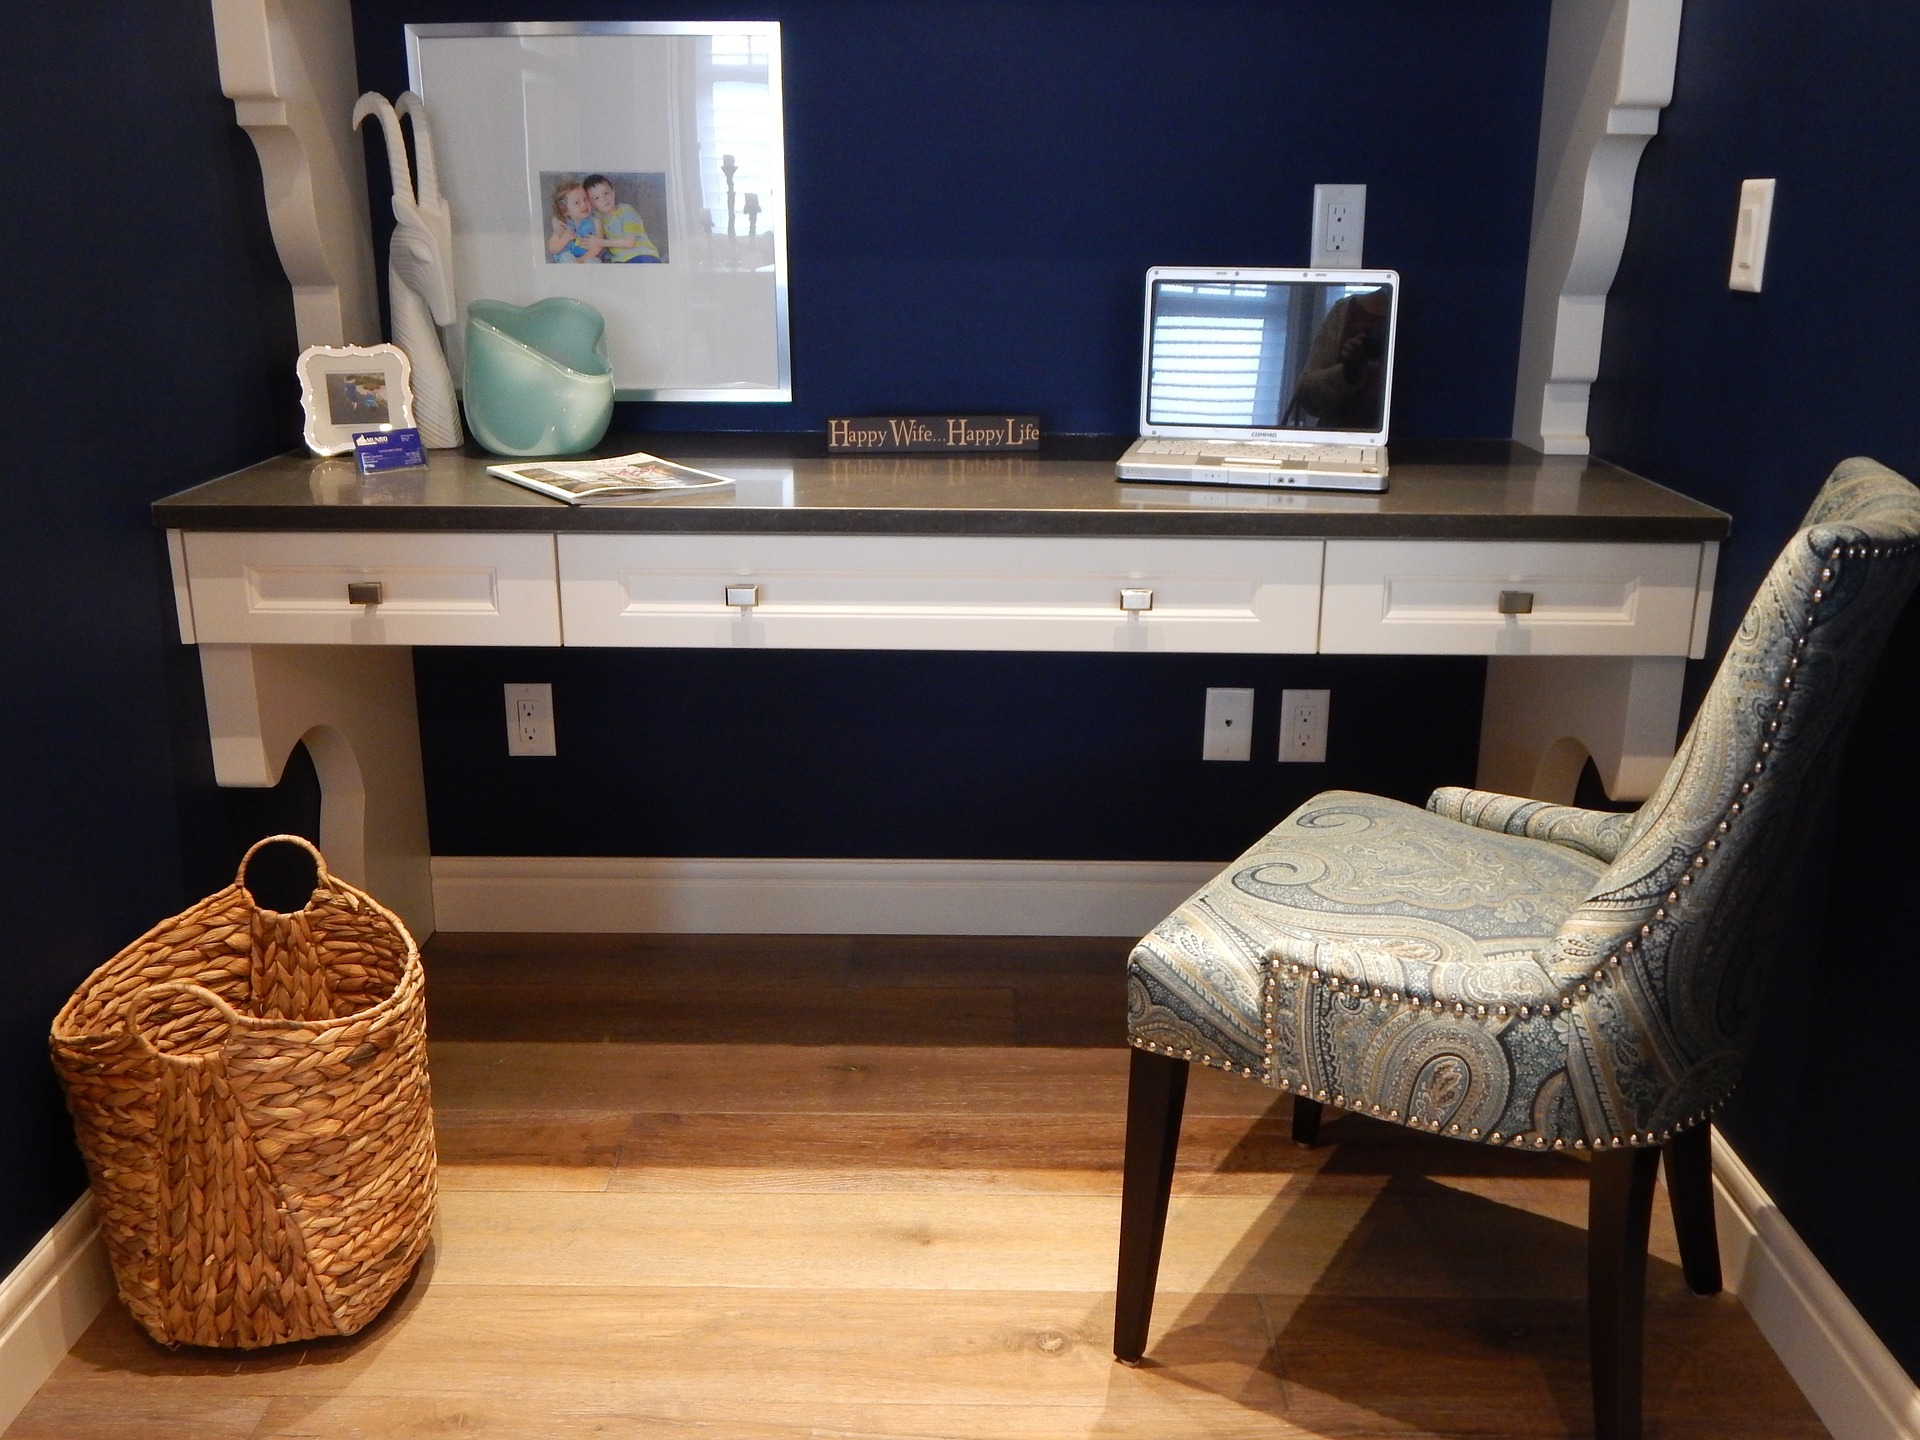 Blue home office Small Feng Shui Your Home Office Using Earth Tones In Interior Design Bauhaus Your House Feng Shui Your Home Office Httpsupermodernbauhaus2yourhousecom